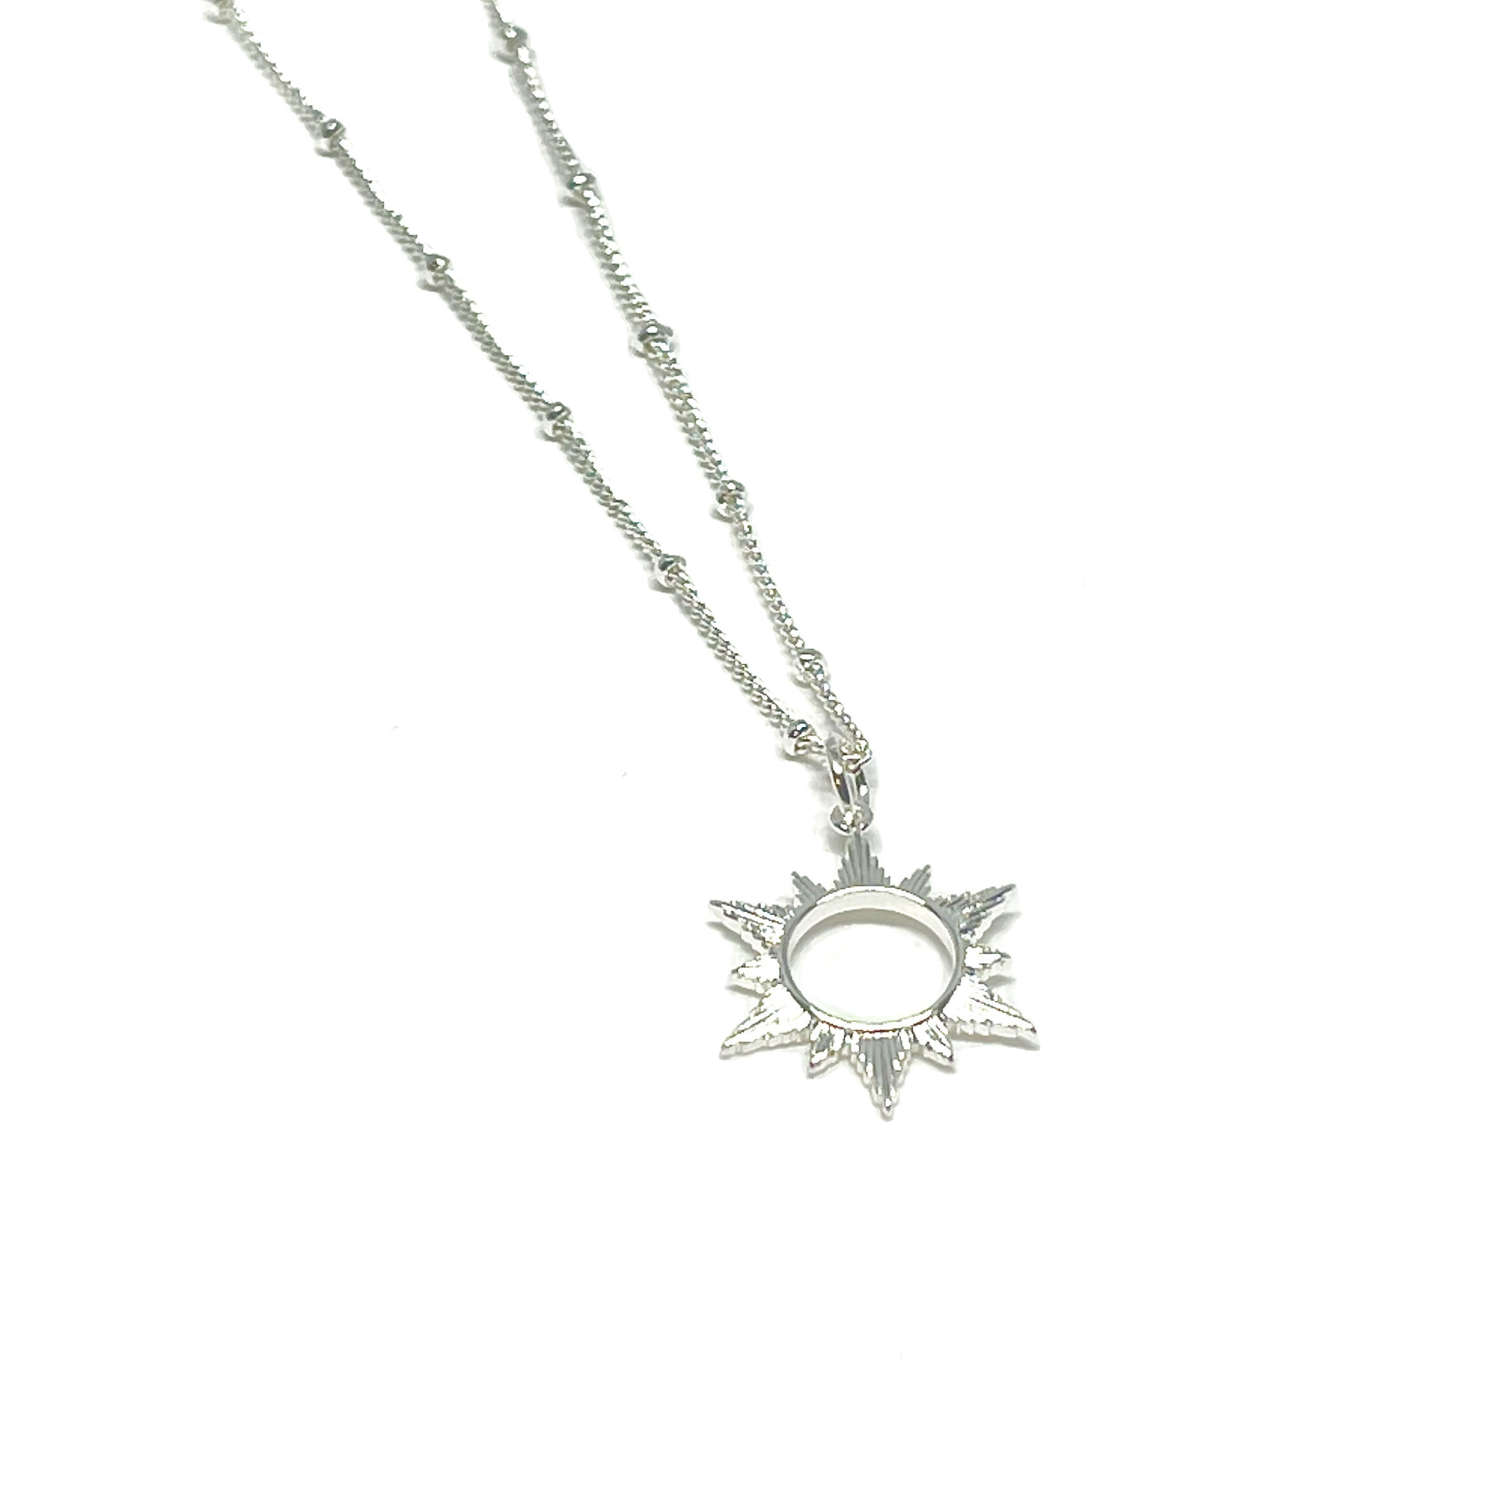 Ophelia Sun Necklace - Silver